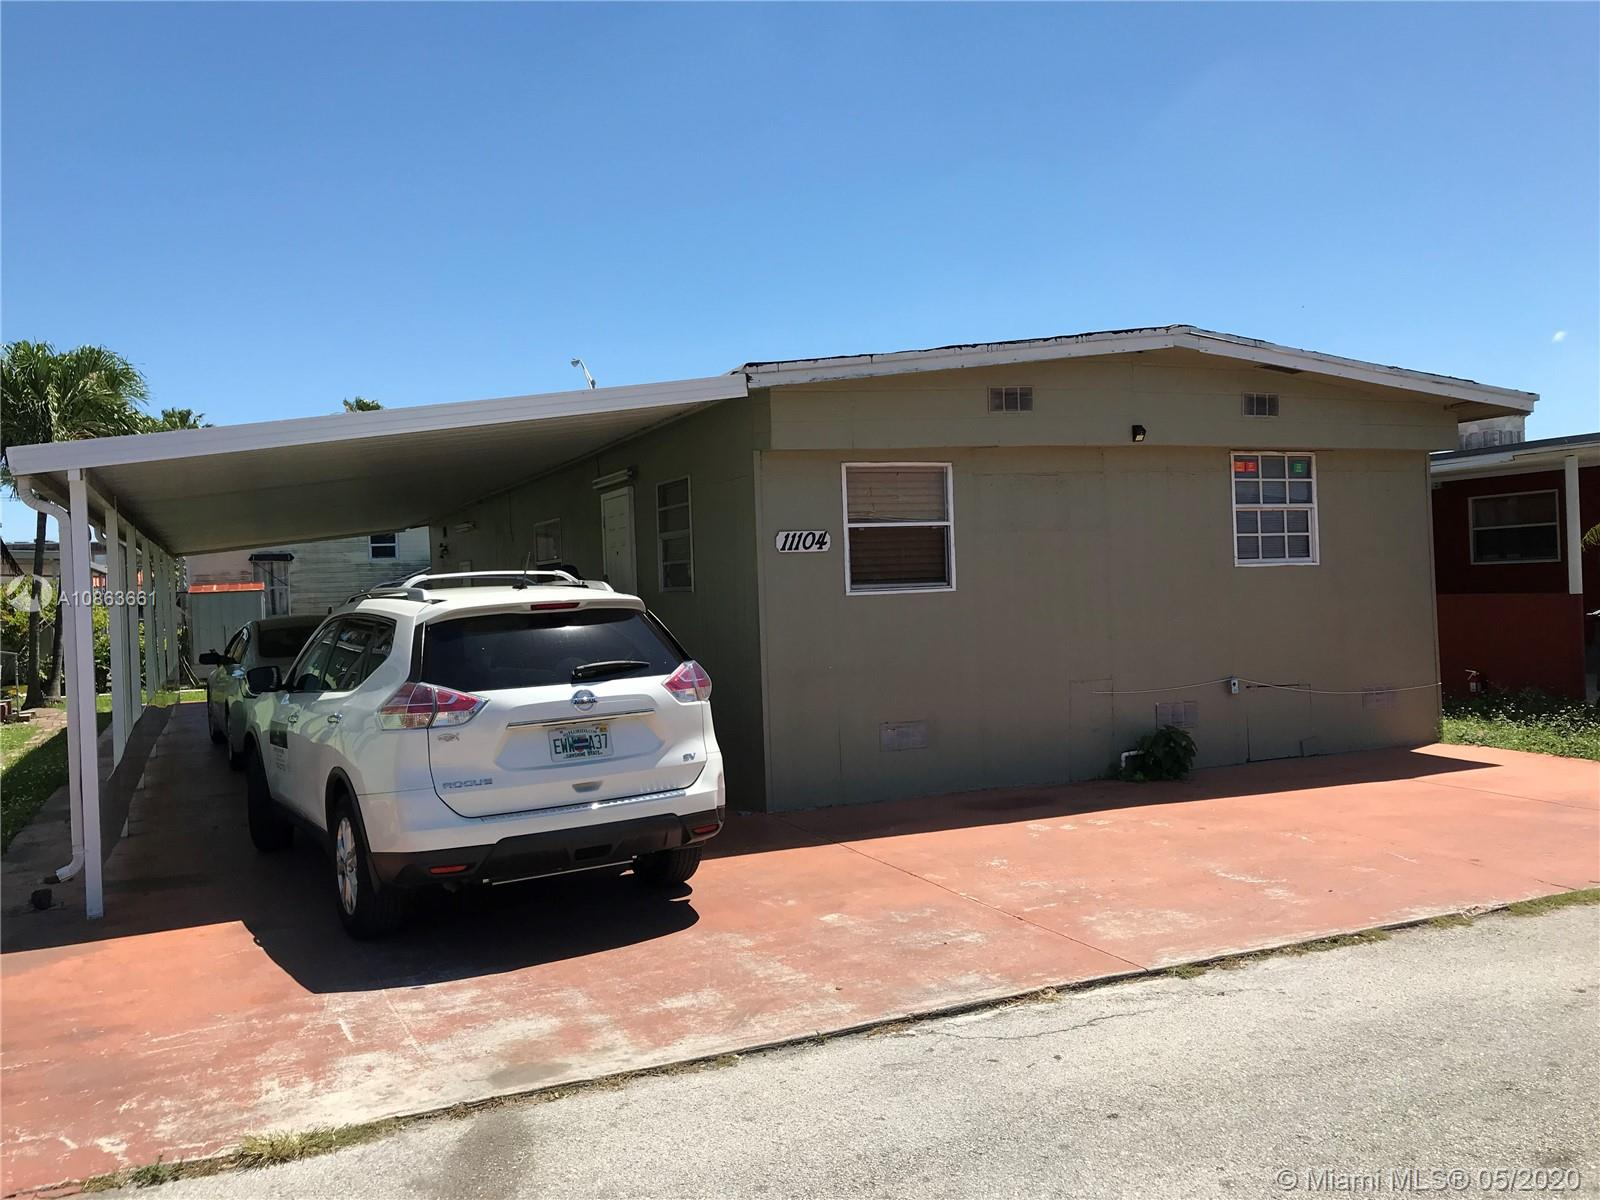 EXCELLENT LOCATION, WALKING DISTANCE TO ALL BUSINESSES AND SOCIAL SECURITY OFFICE ON FLAGLER ST, BEST PRICED MOBILE HOME IN THE AREA, WASHER & DRYER, STORAGE ROOM, PARKING FOR 2-3 CARS, 2 ICE COLD A/C UNITS, BATHROOMS ARE IN GOOD SHAPE, THIS UNIT NEEDS SOME UPGRADING, BUT IT IS IN GOOD LIVEABLE CONDITIONS, PARK IS WELL MAINTAINED AND HAS RECREATIONAL AREAS, OWNER IS OPEN TO OFFERS, BRING YOURS ASAP, IT WON'T LAST.